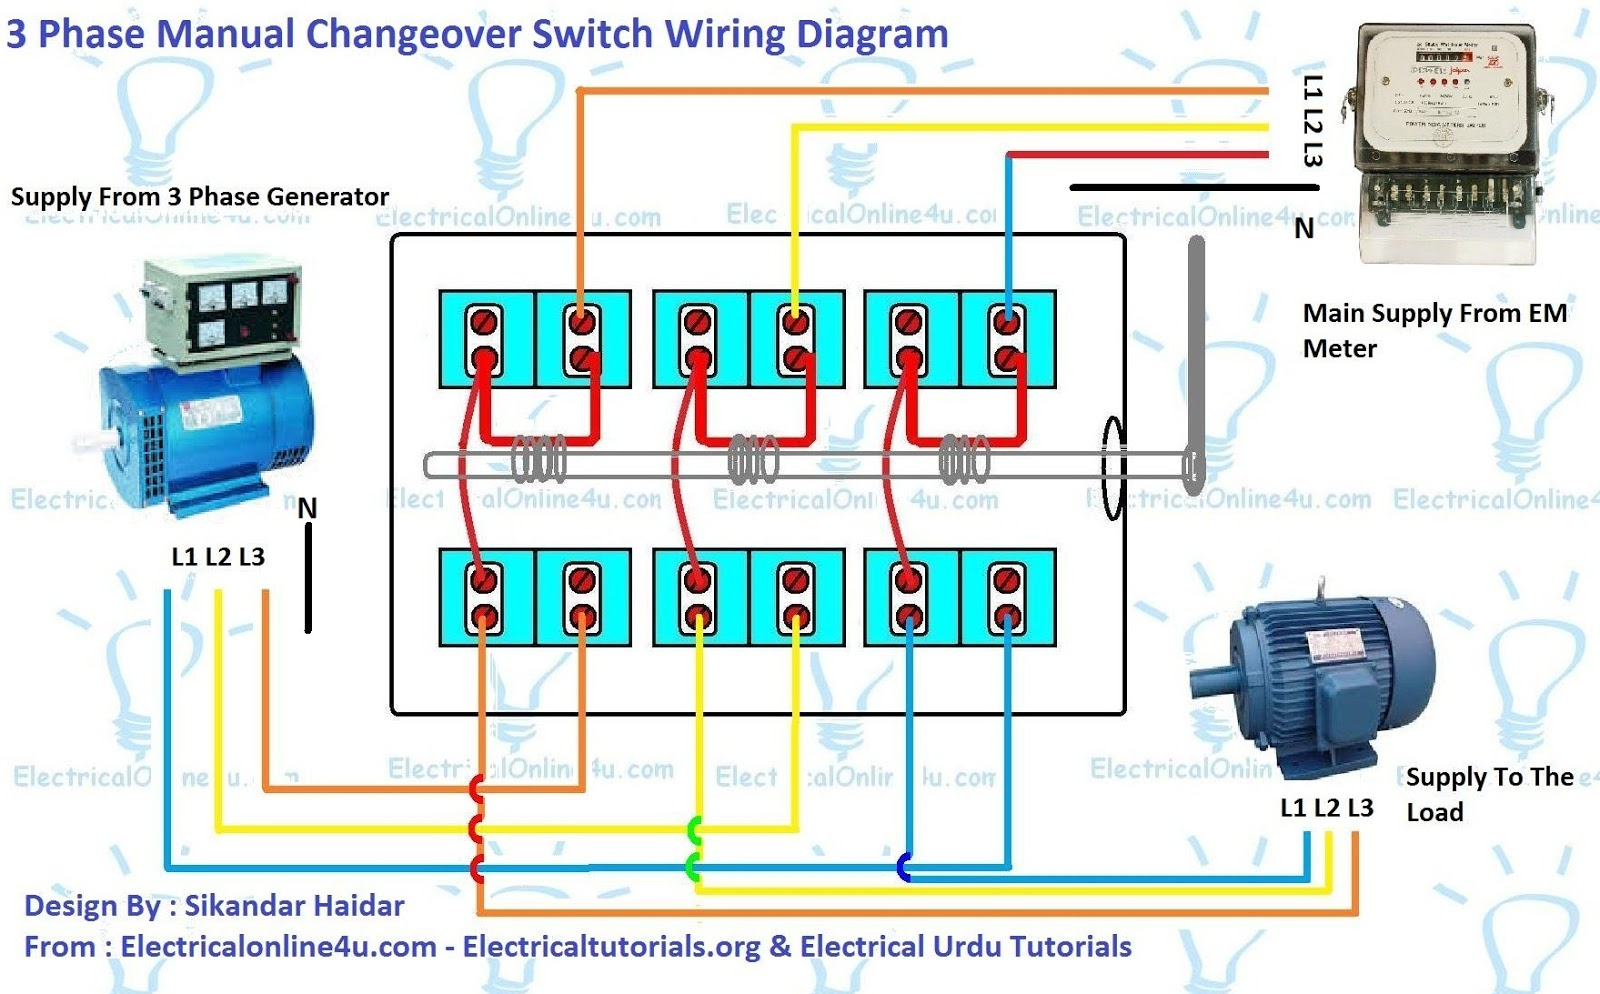 3%2Bphase%2Bmanual%2Bchangeover%2Bswitch%2Bwiring%2Bdiagram  Phase Wiring Colors on 3 phase color codes, 3 phase cable colors, 3 phase voltage colors, 3 phase wiring symbols,